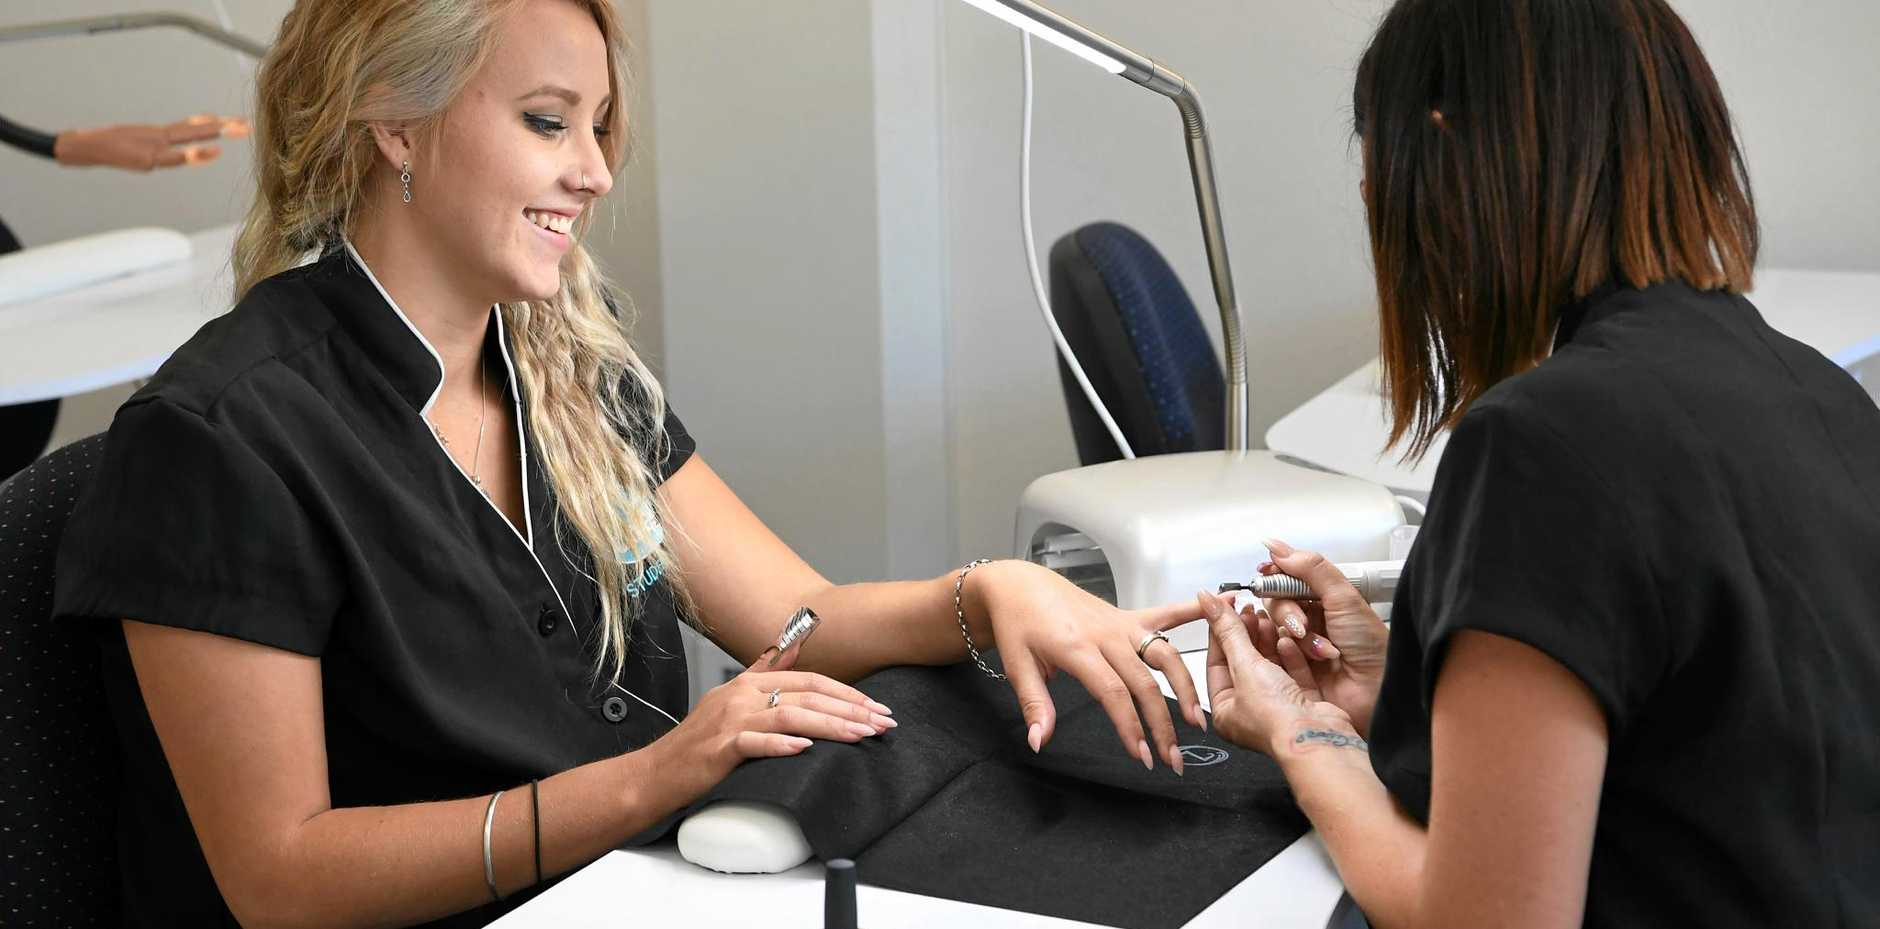 HAIR AND BEAUTY: Cert II Nail Technology students Chrissy Thompson and Jenna Brown at the newly refurbished TAFE beauty salon.